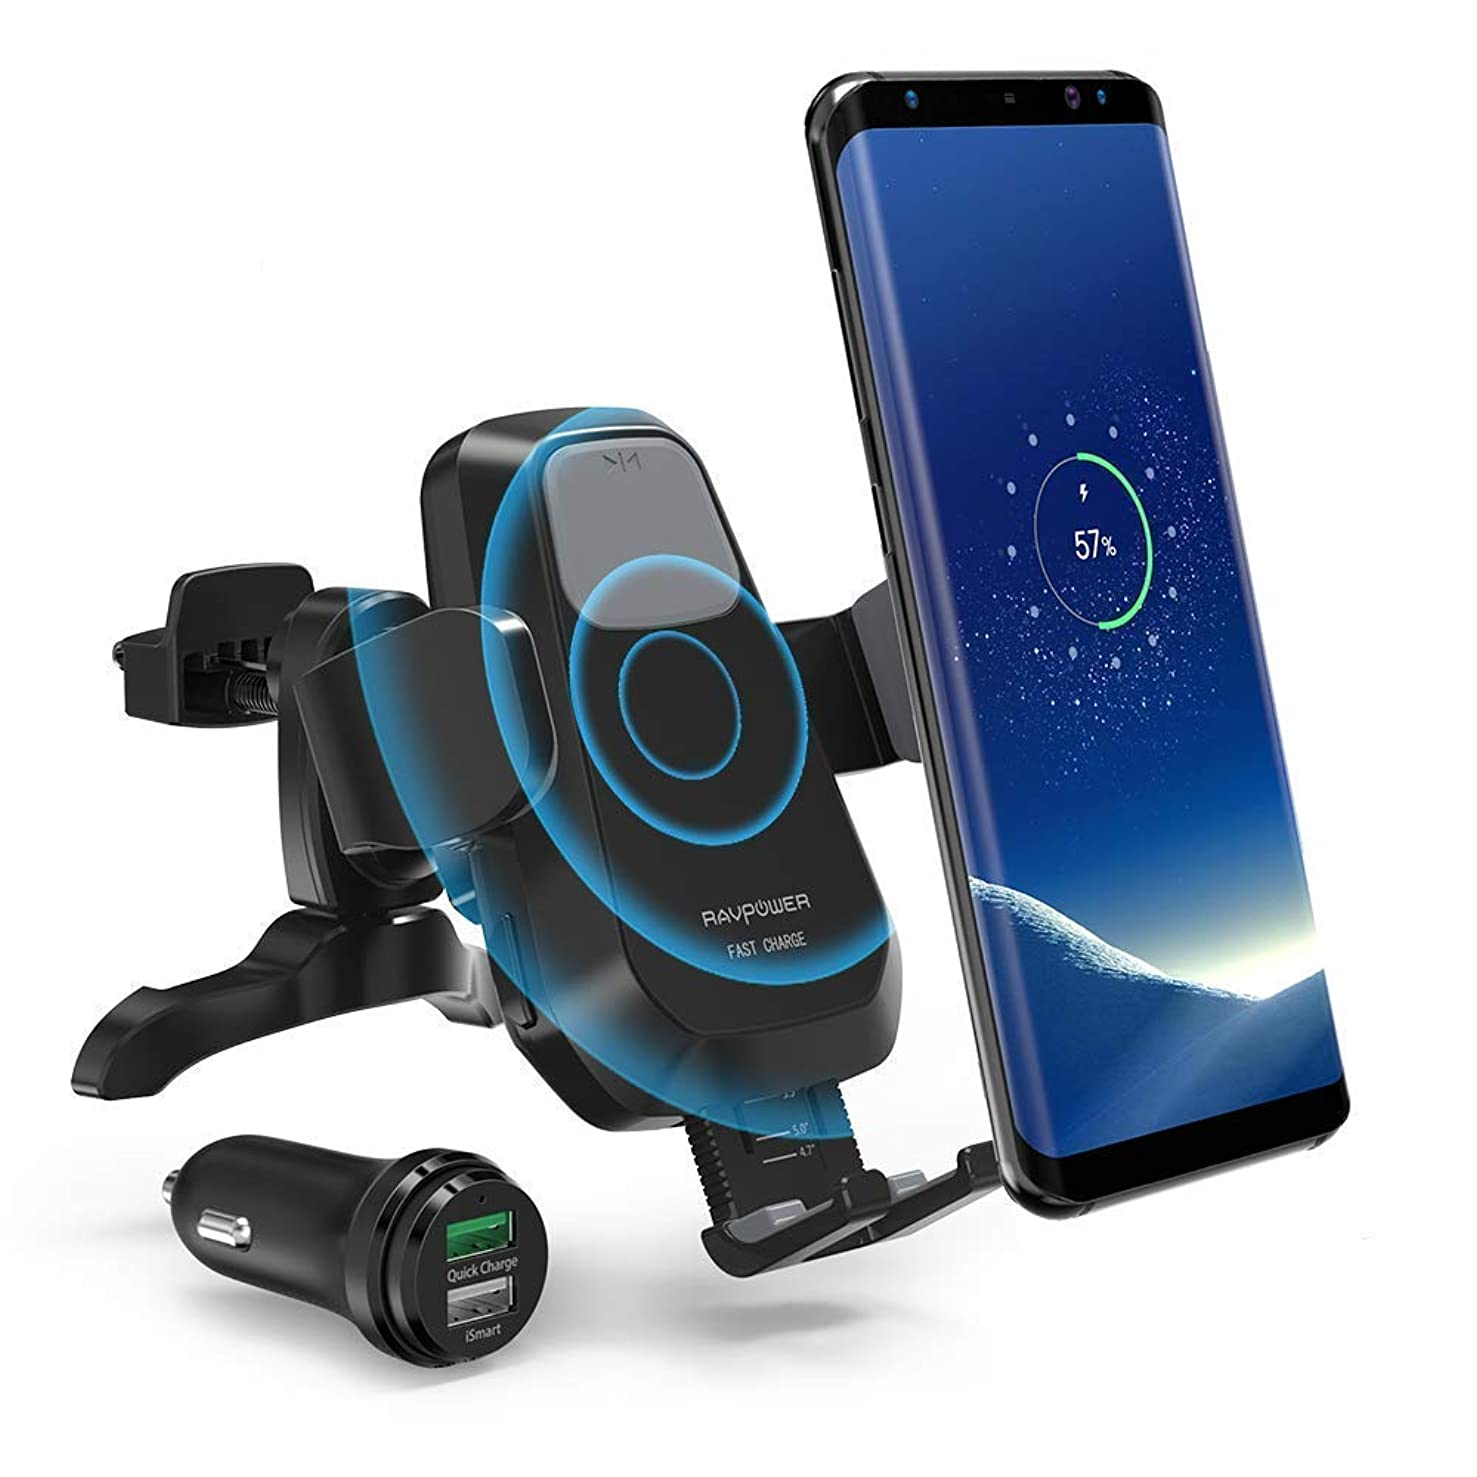 RAVPower Qi Wireless Car Fast Charger 7.5W / 10 W Phone Holder Car Vent Electric Lock Release Compatible iPhone Xs Max XR X 8 7 Plus Galaxy S9 S8 Plus Note 9 8(Renewed)